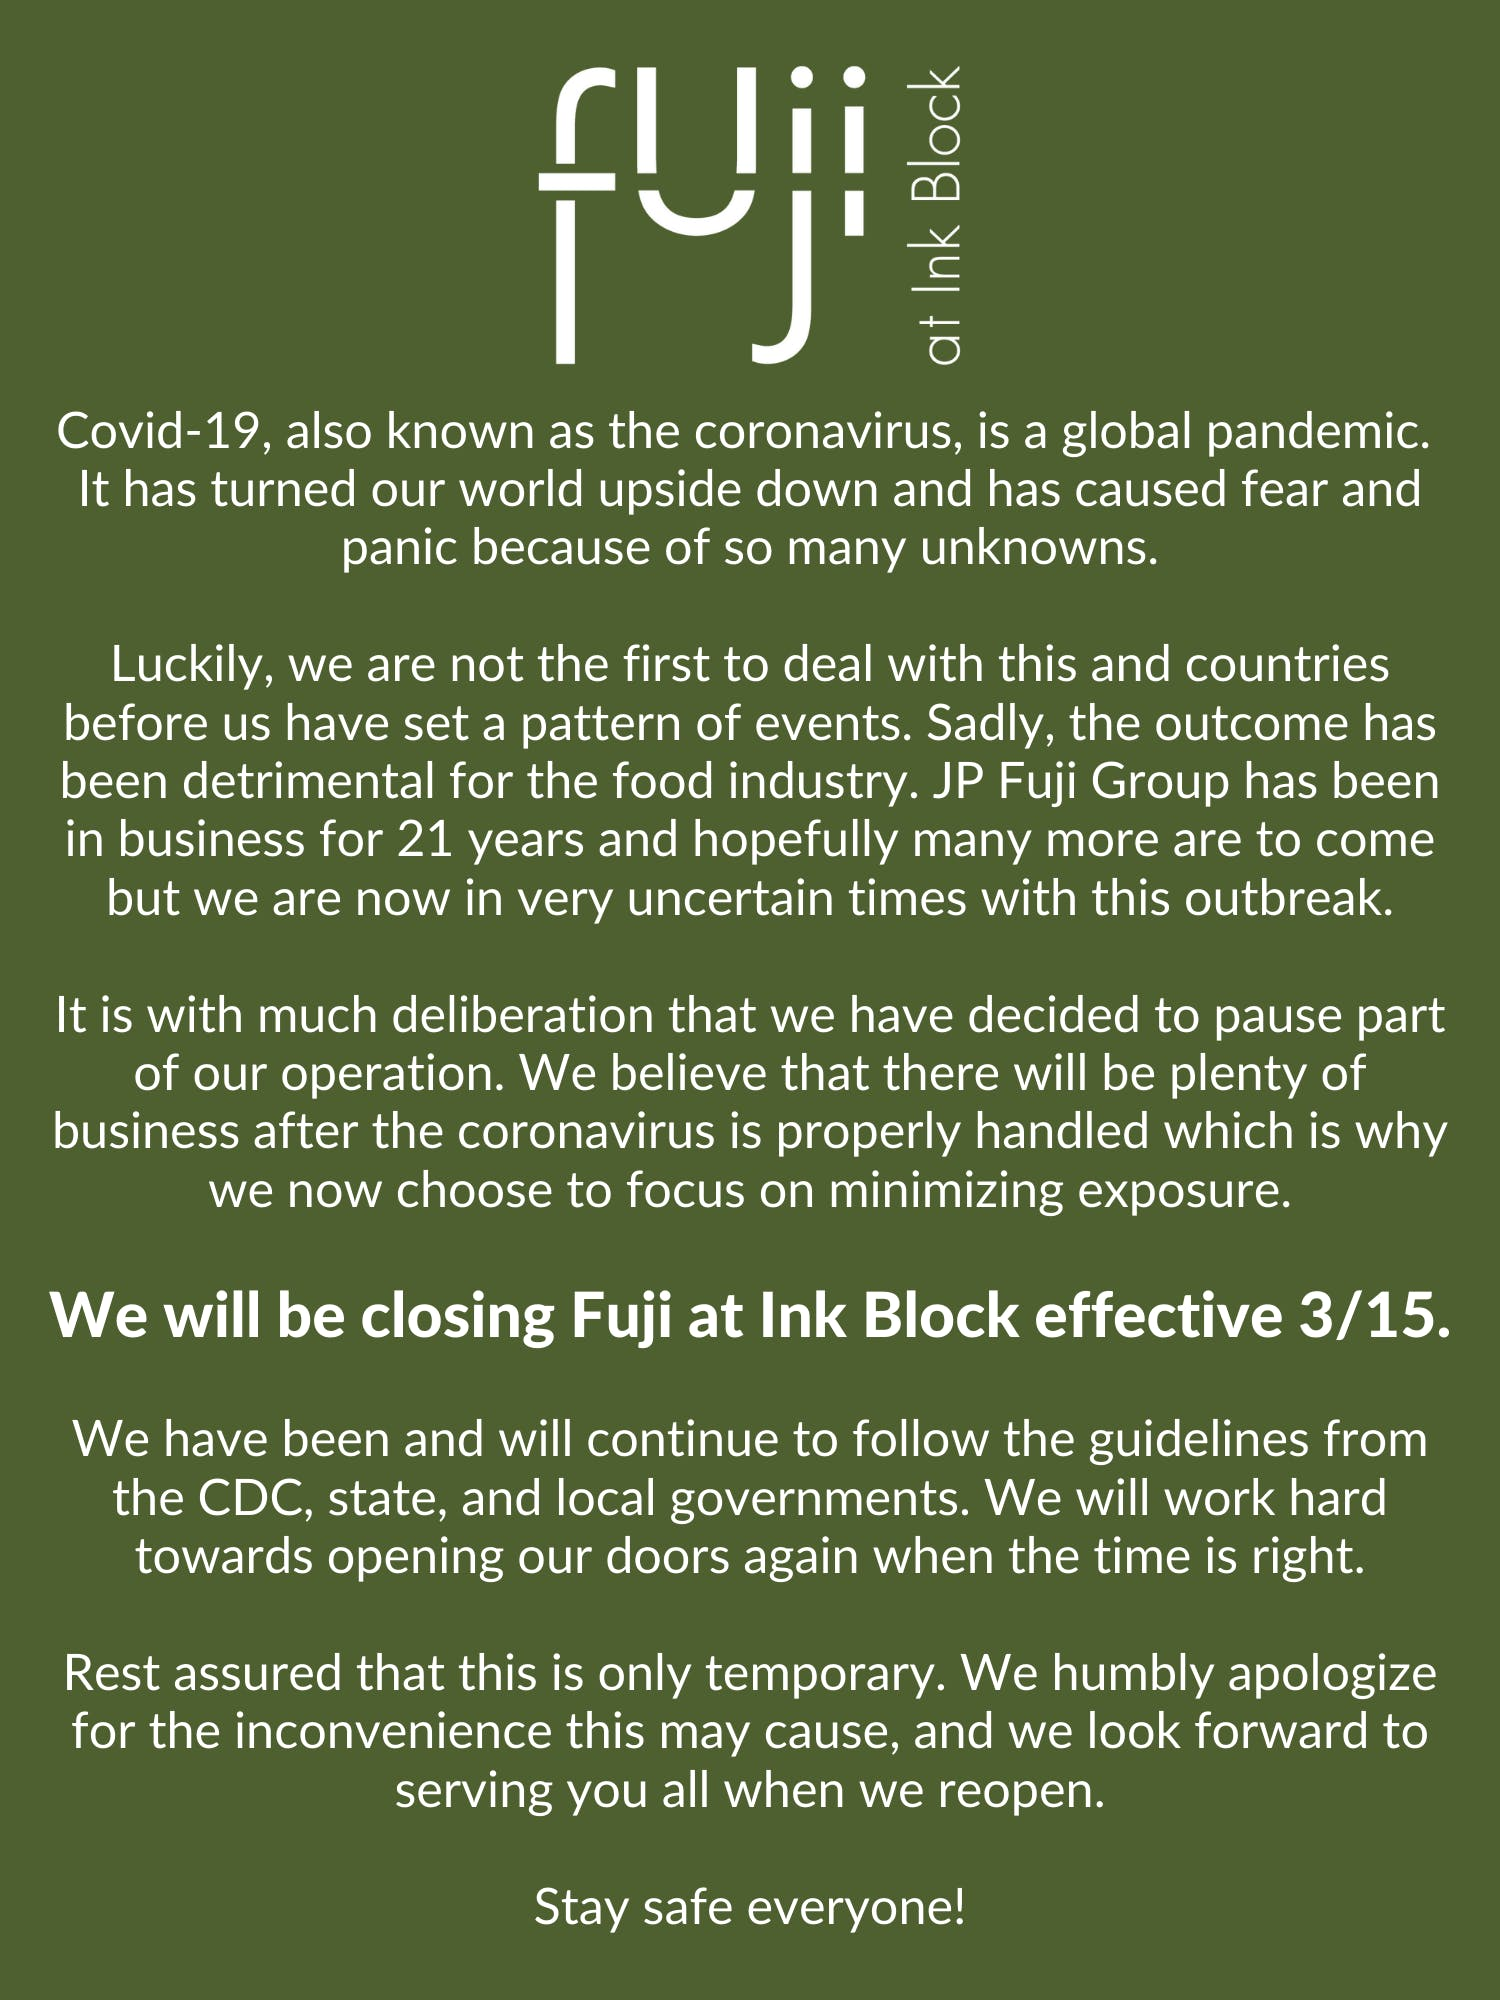 Fuji at Ink Block will be closed until further notice due to the Coronavirus pandemic. We apologize for any inconvenience this may cause!